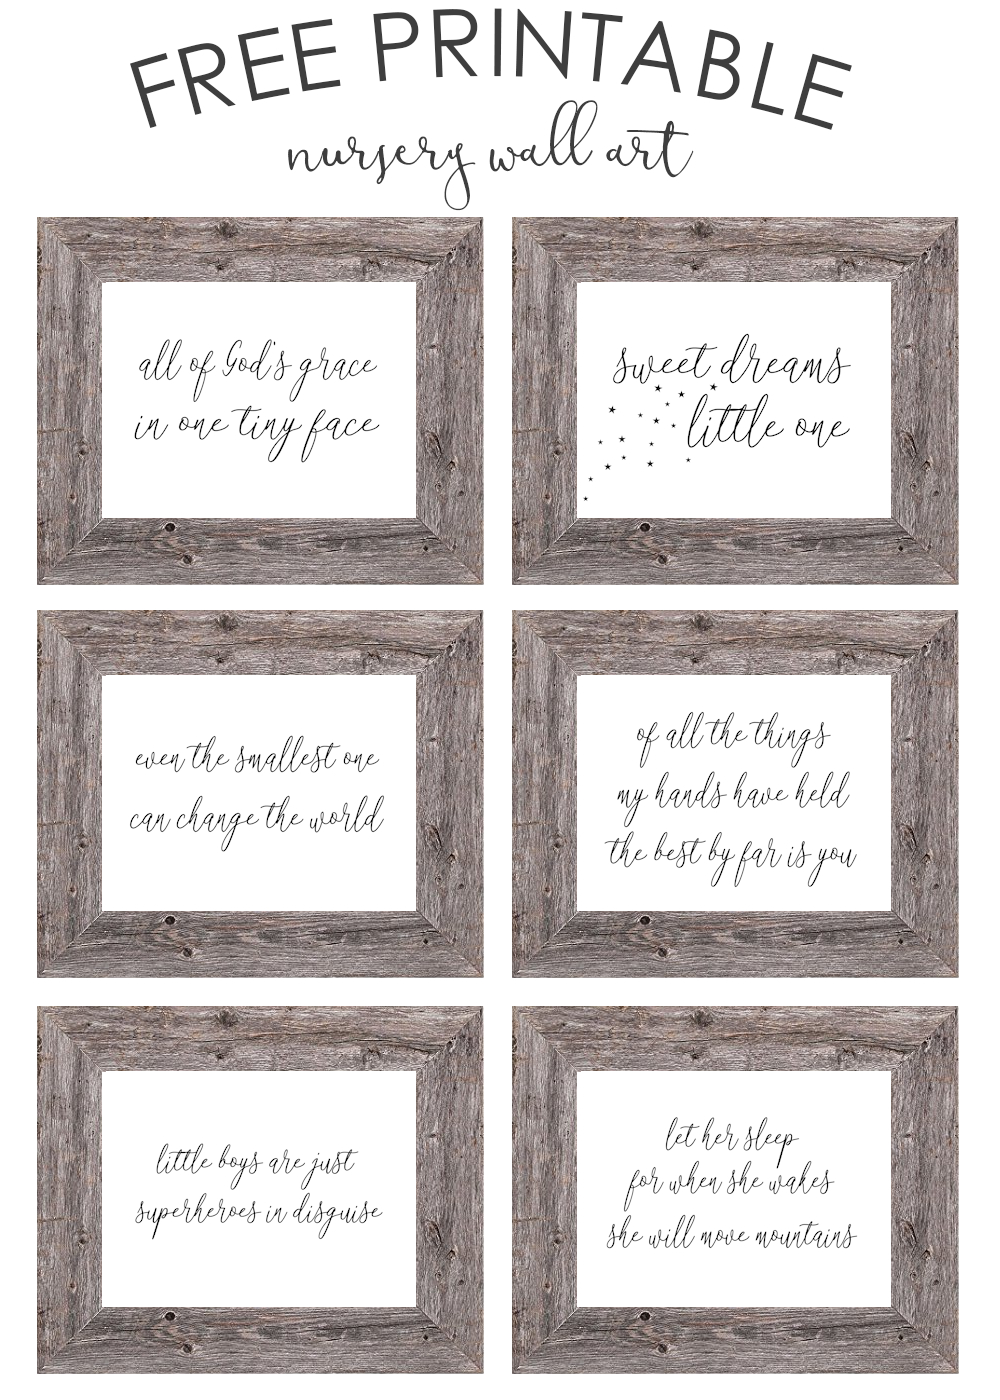 Free Printable Nursery Wall Art - The Girl Creative - Free Printable Wall Art Decor